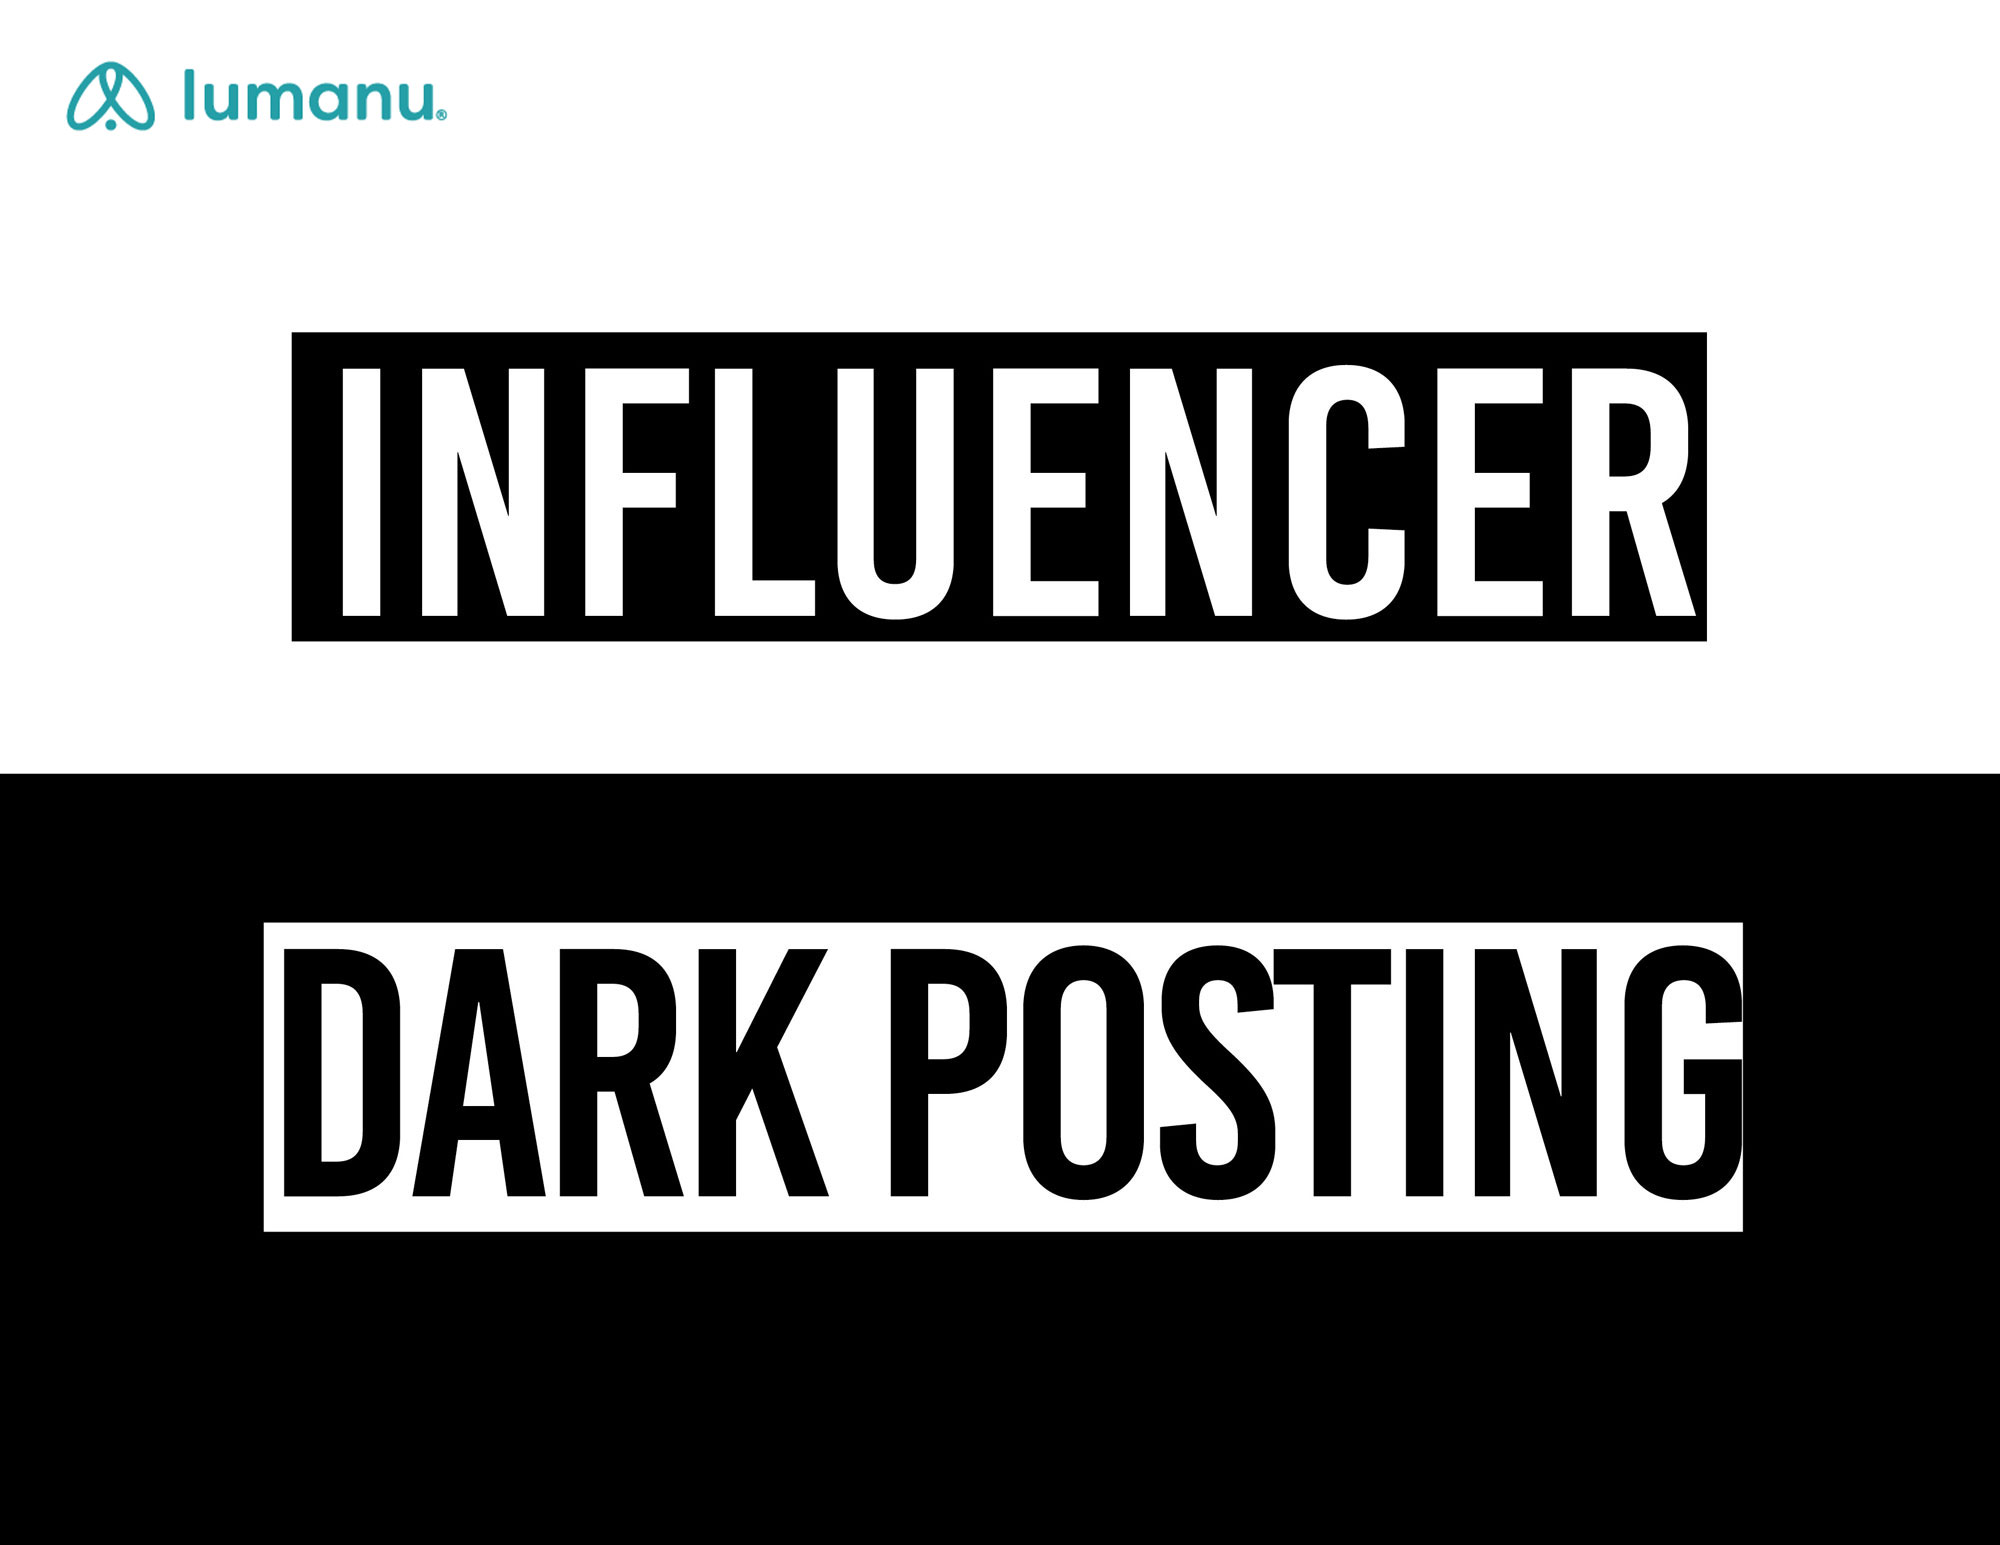 Influencer Dark Posts give brands the opportunity to leverage influencer assets and measure what is truly driving success for them. Utilizing best practices and optimizations, they can build consumer trust, reduce ad fatigue, increase reach, and so much more. This article discusses what influencer dark posts are and how you can use them to strengthen your influencer marketing campaigns.